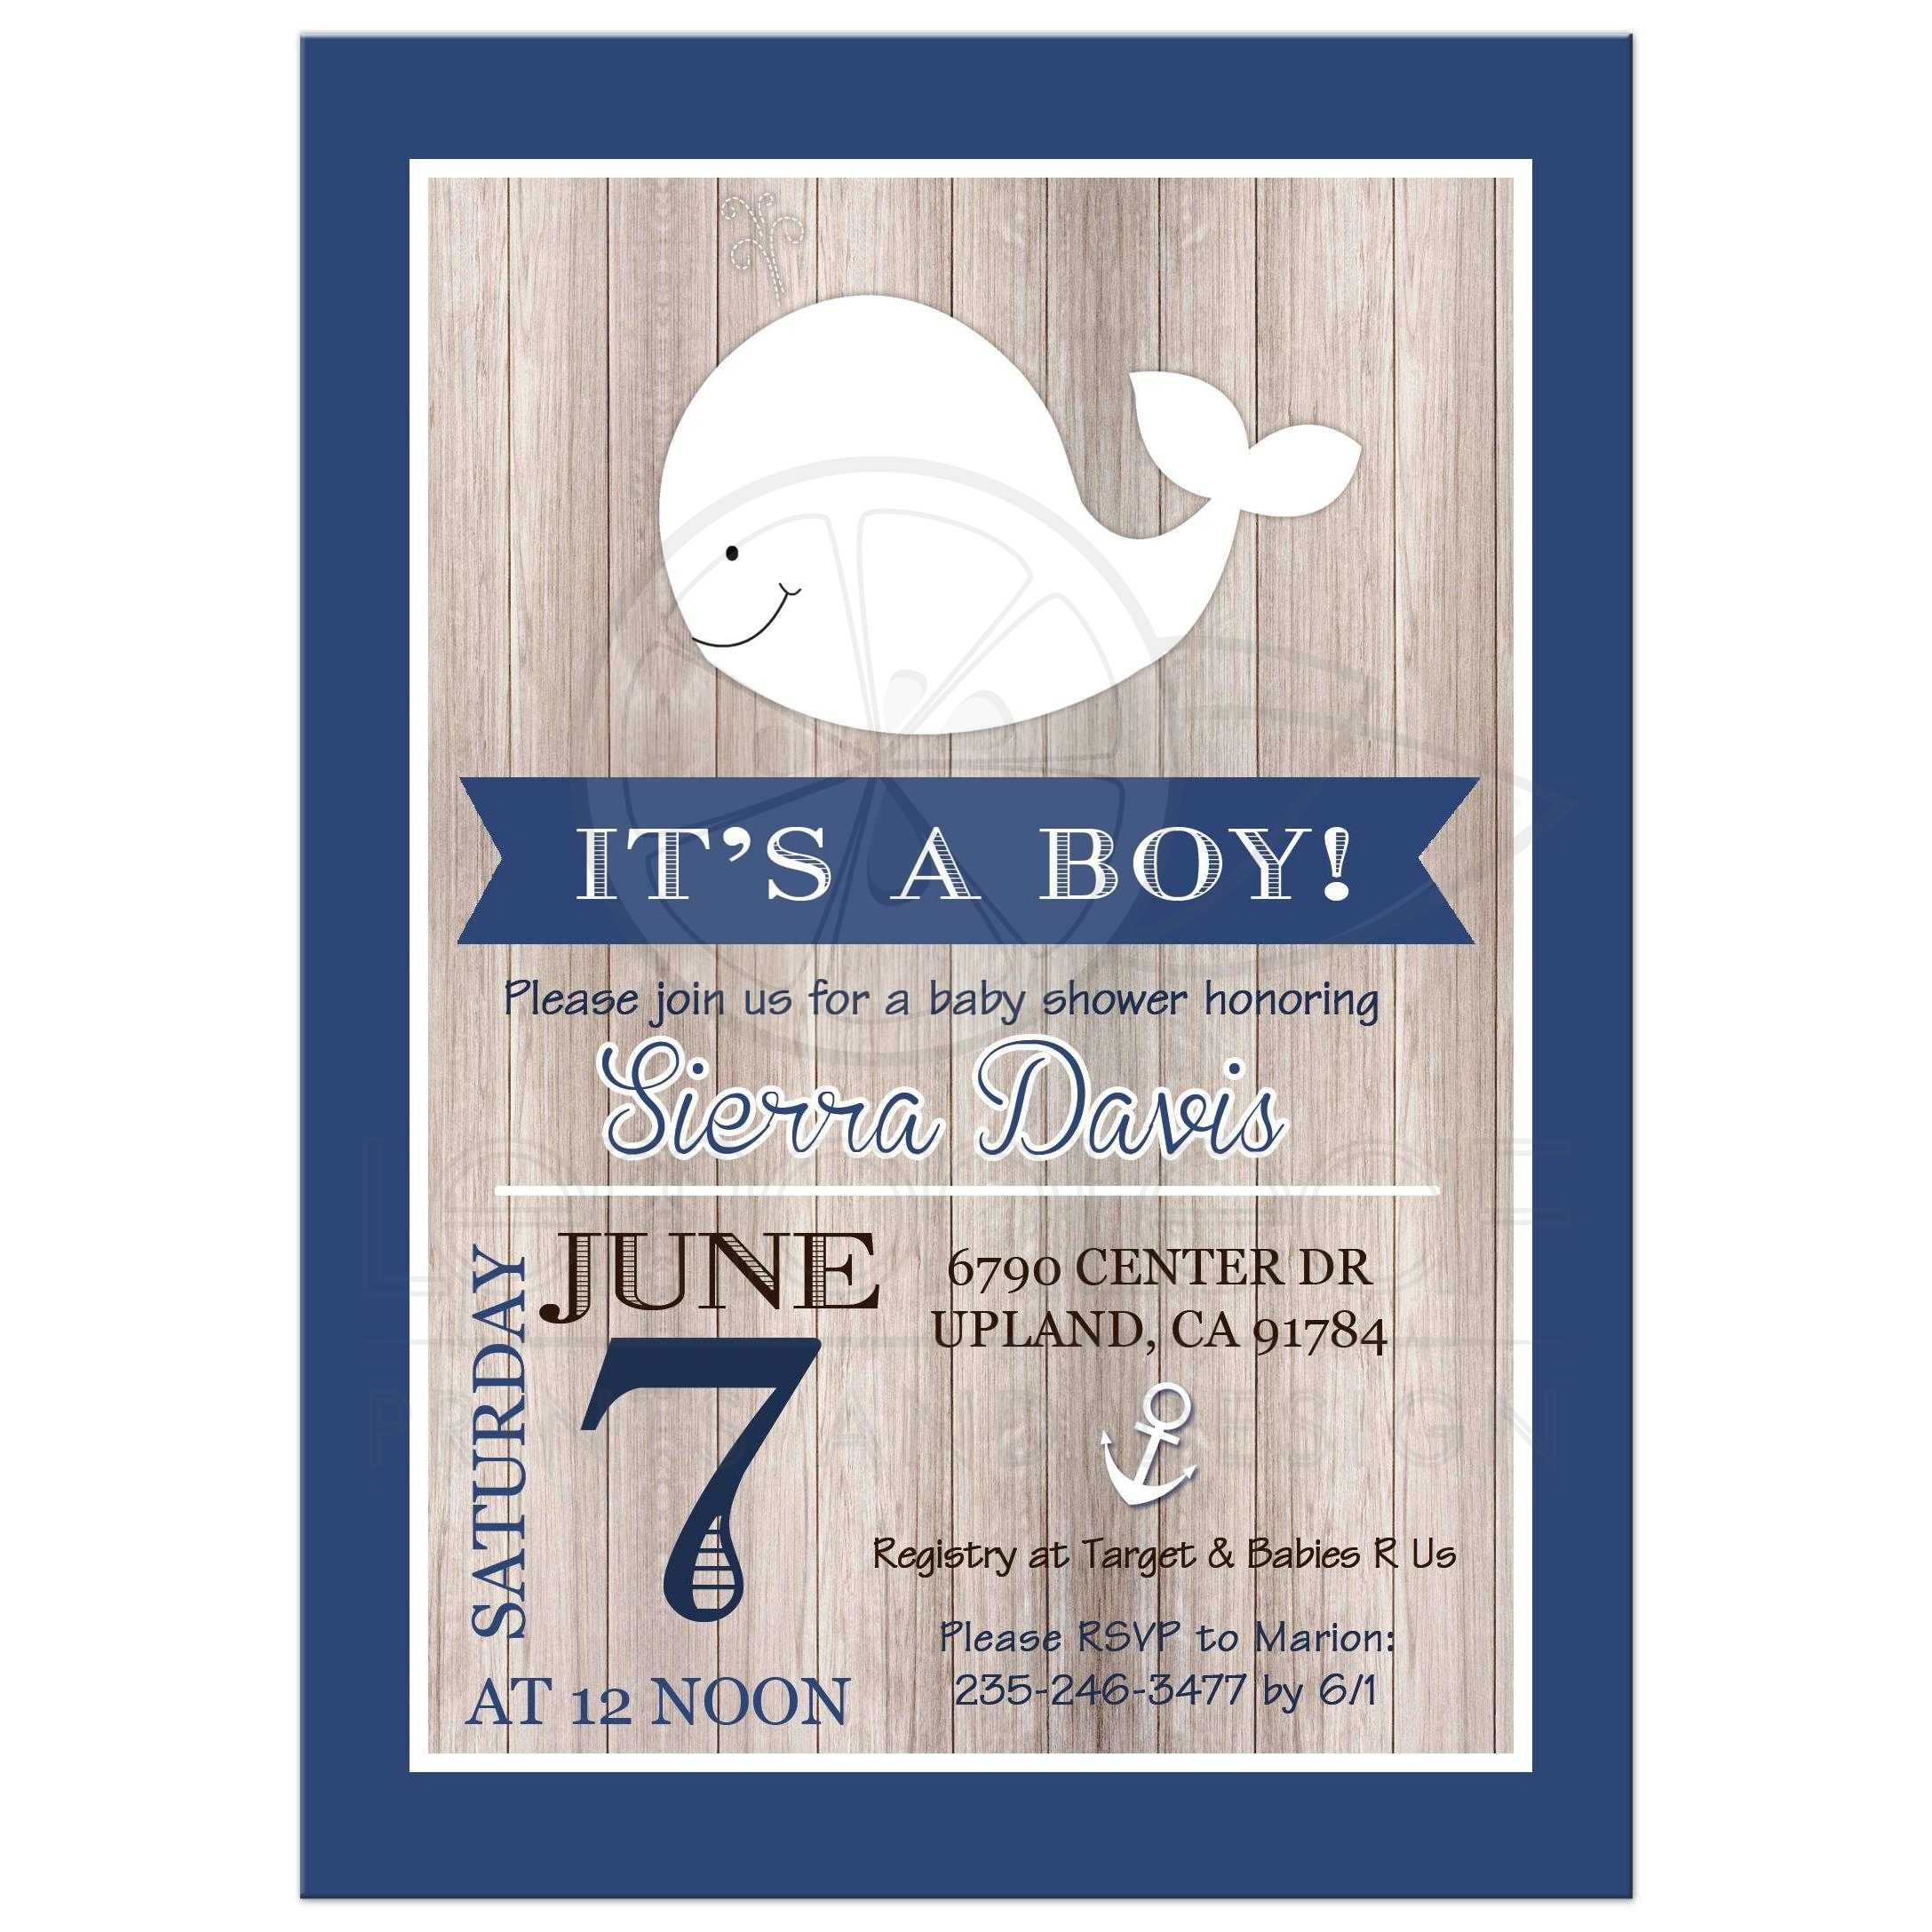 Rustic nautical whale white and navy baby shower invitation navy blue and white rustic whale nautical baby shower invitation filmwisefo Images